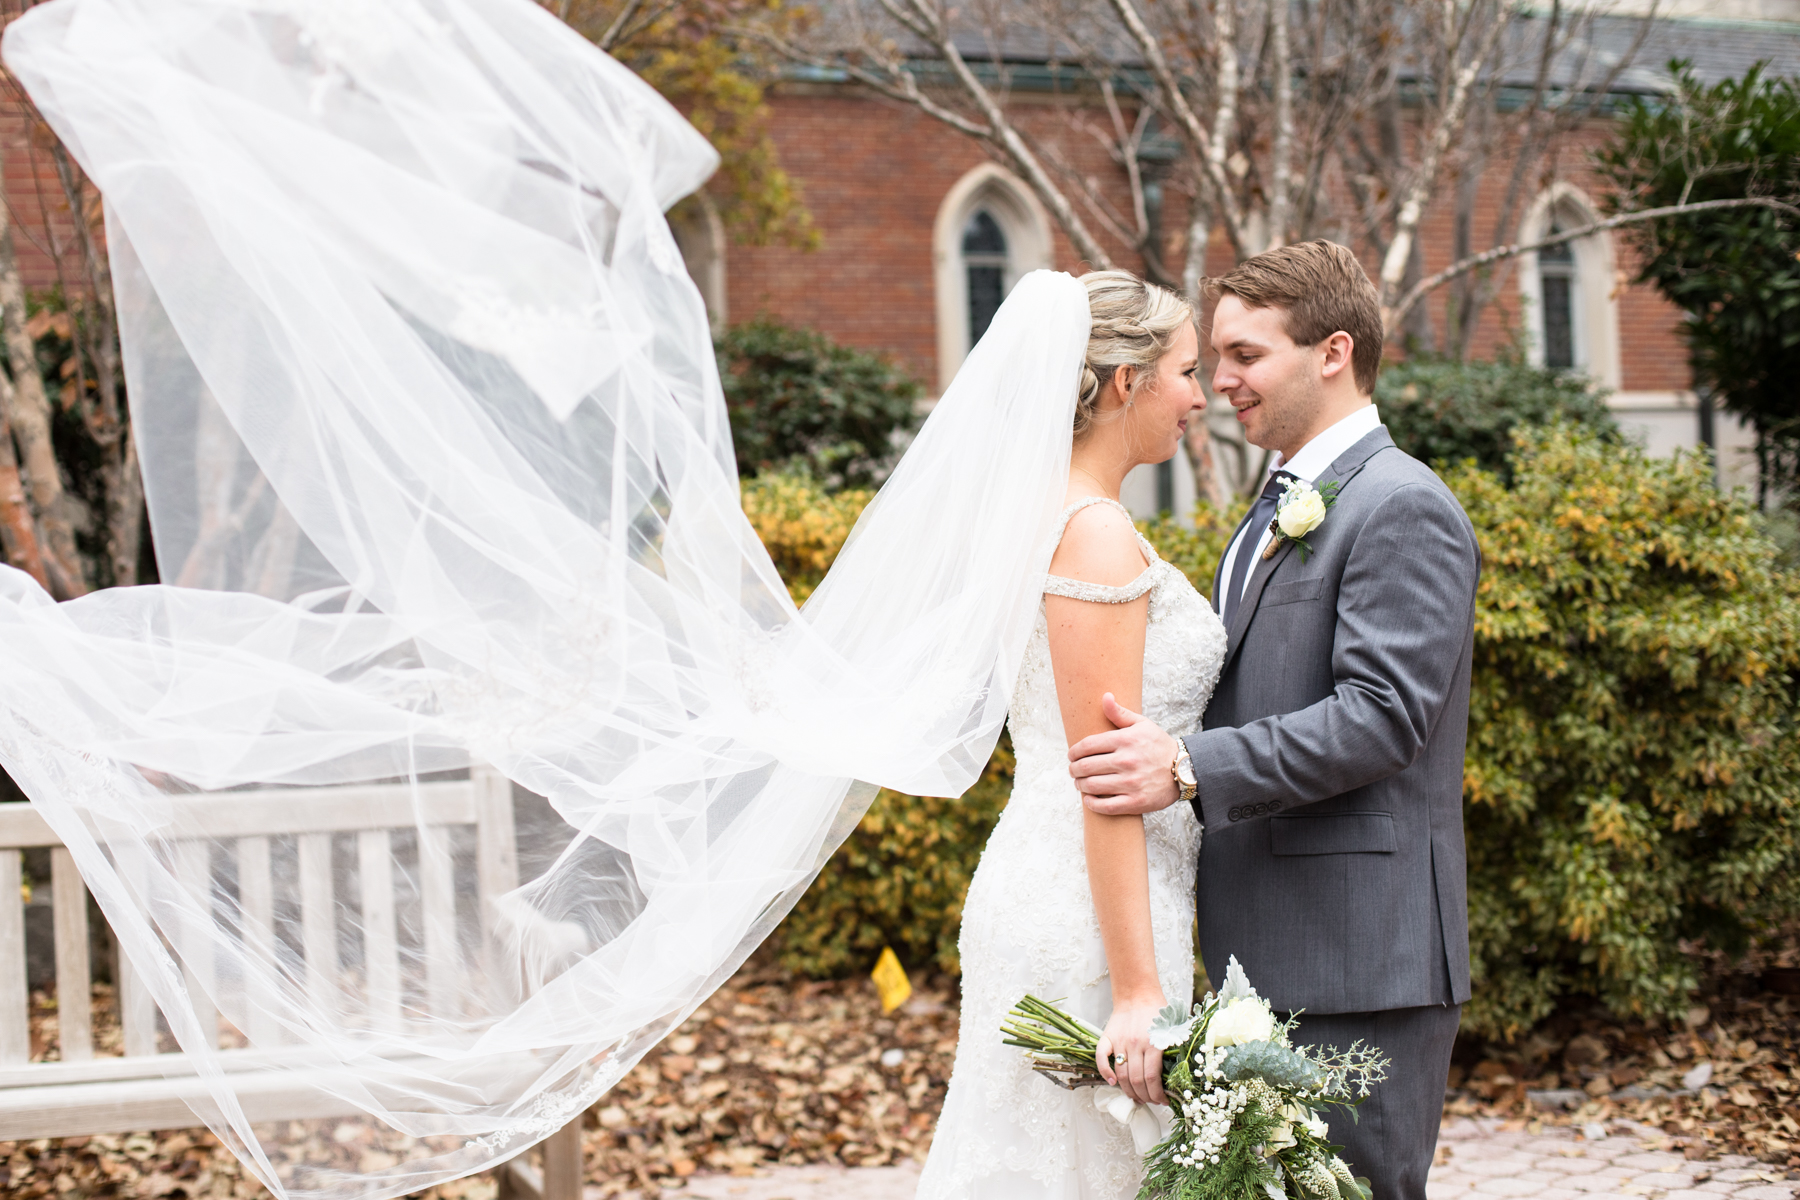 Kelli-and-Matt-Nashville-Wedding-Sneak-Peak-0131.jpg